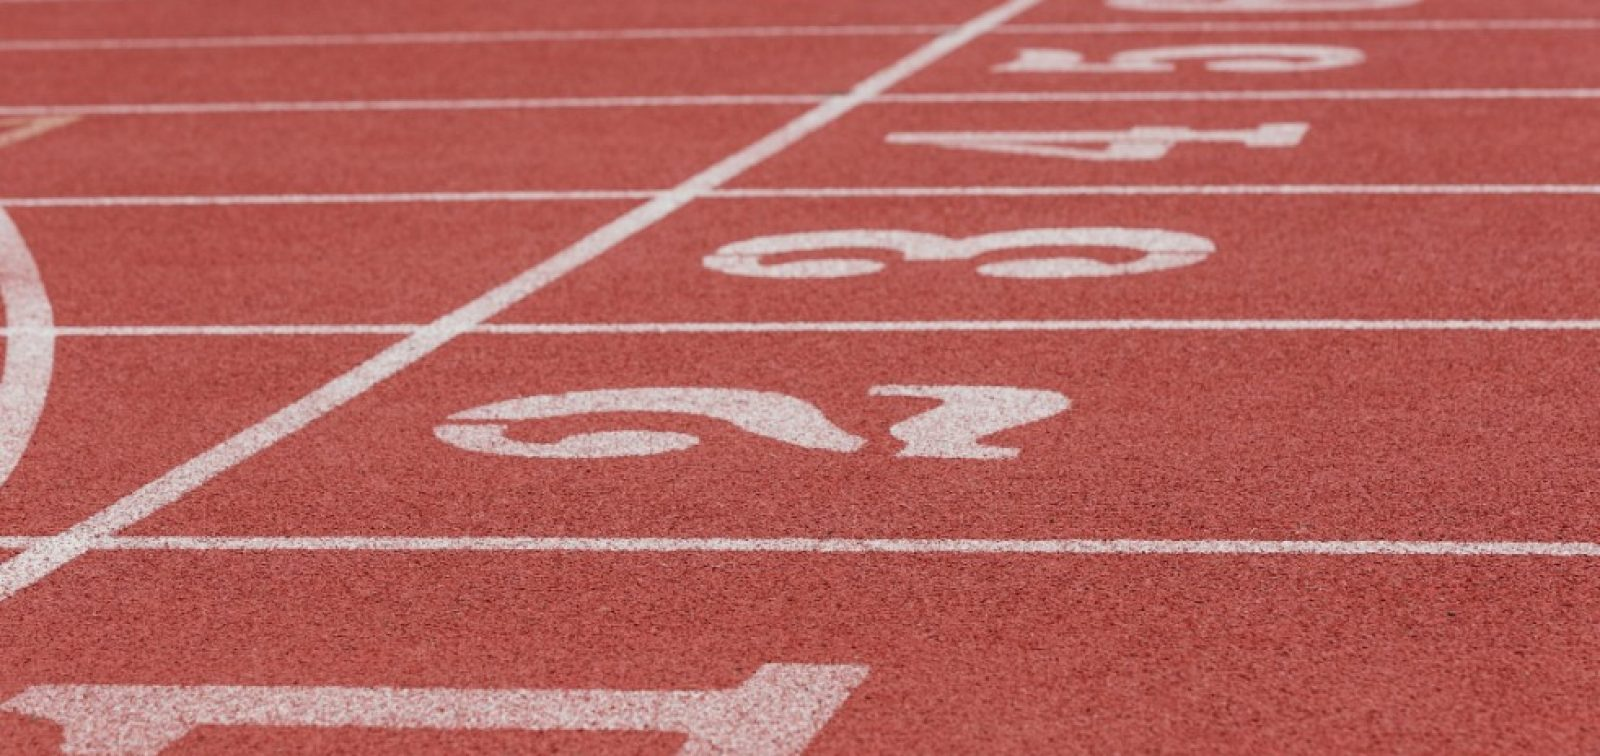 racing-track-and-field-lane-numbers 1